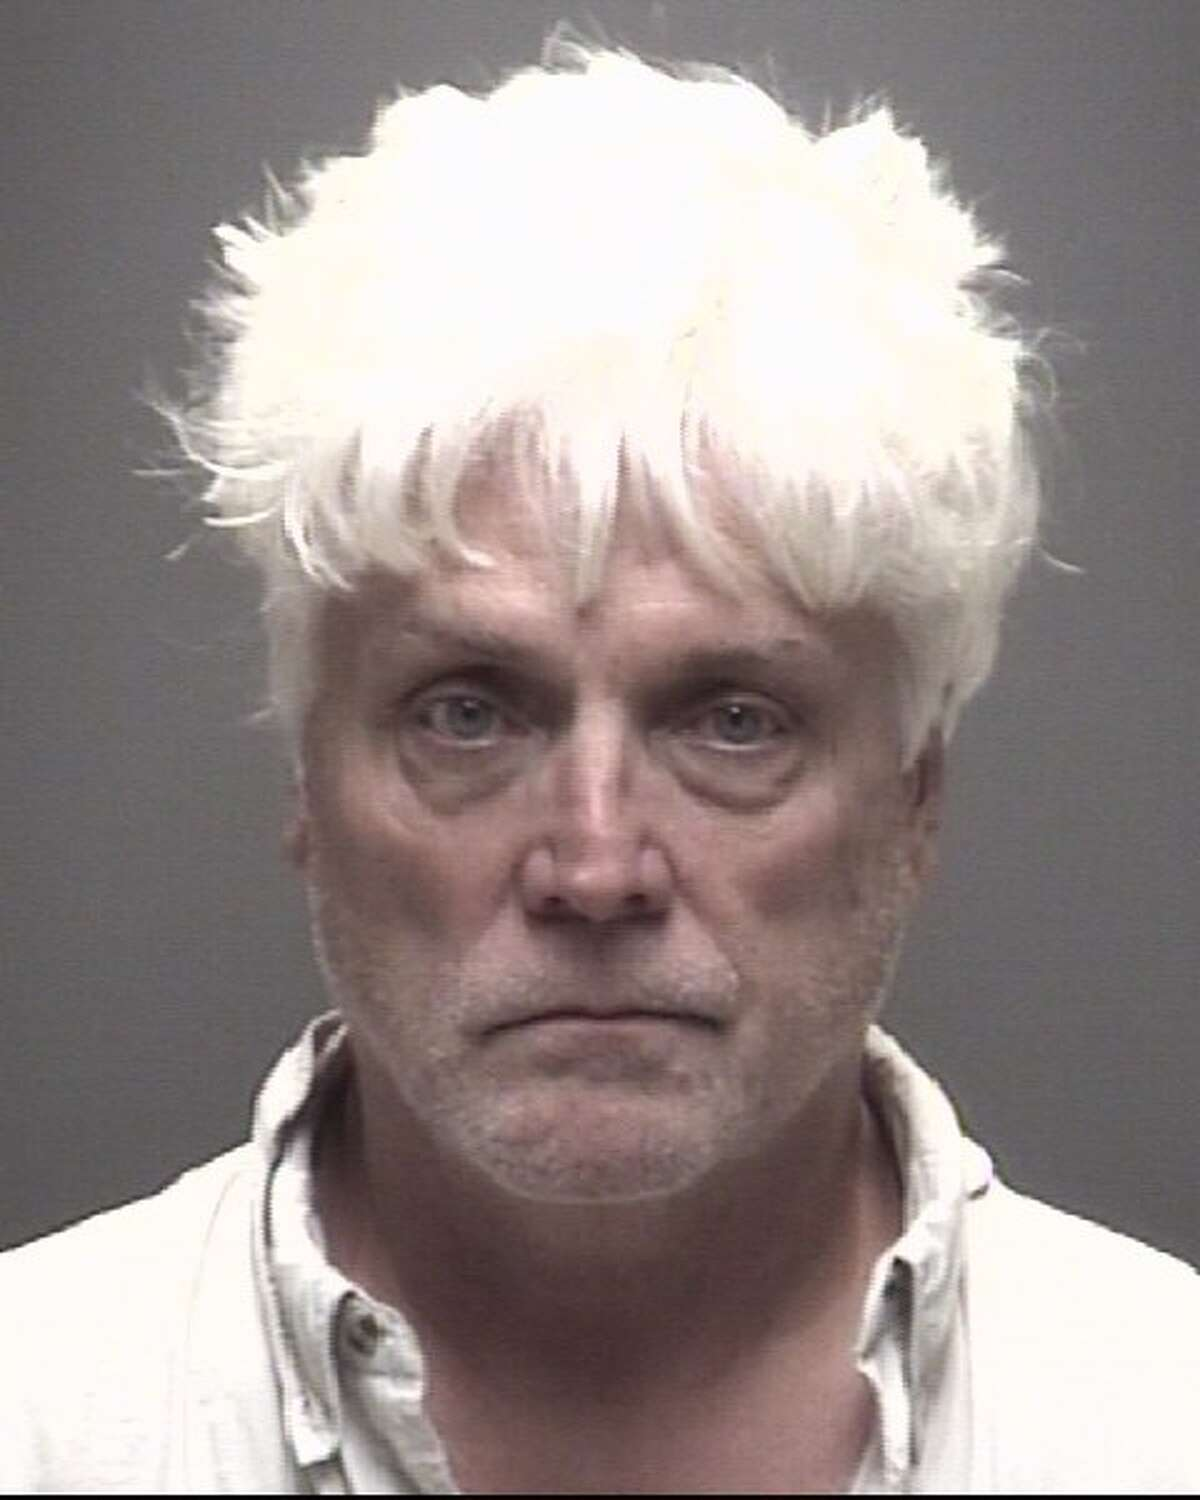 Joe Bonnette was arrested on a third or more charge of DWI.